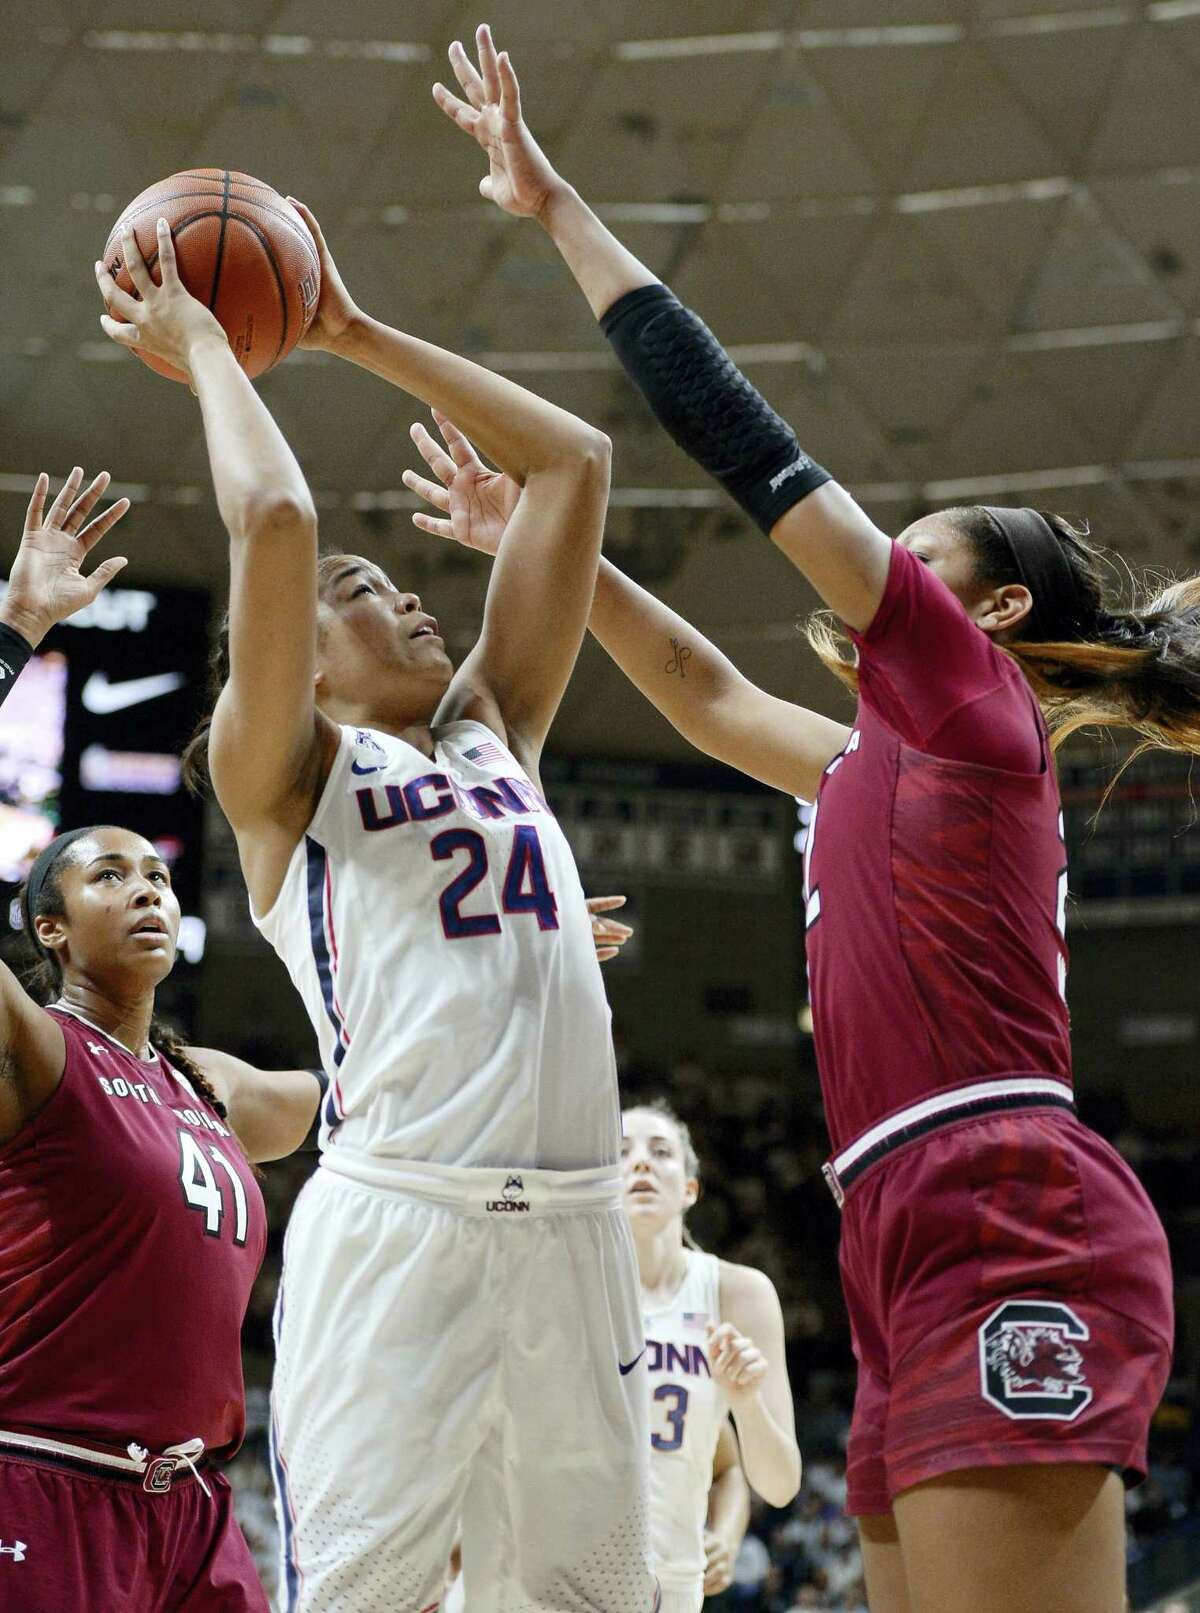 UConn's Napheesa Collier, center, shoots as South Carolina's Alaina Coates, left, and South Carolina's A'ja Wilson, right, defend on Monday.